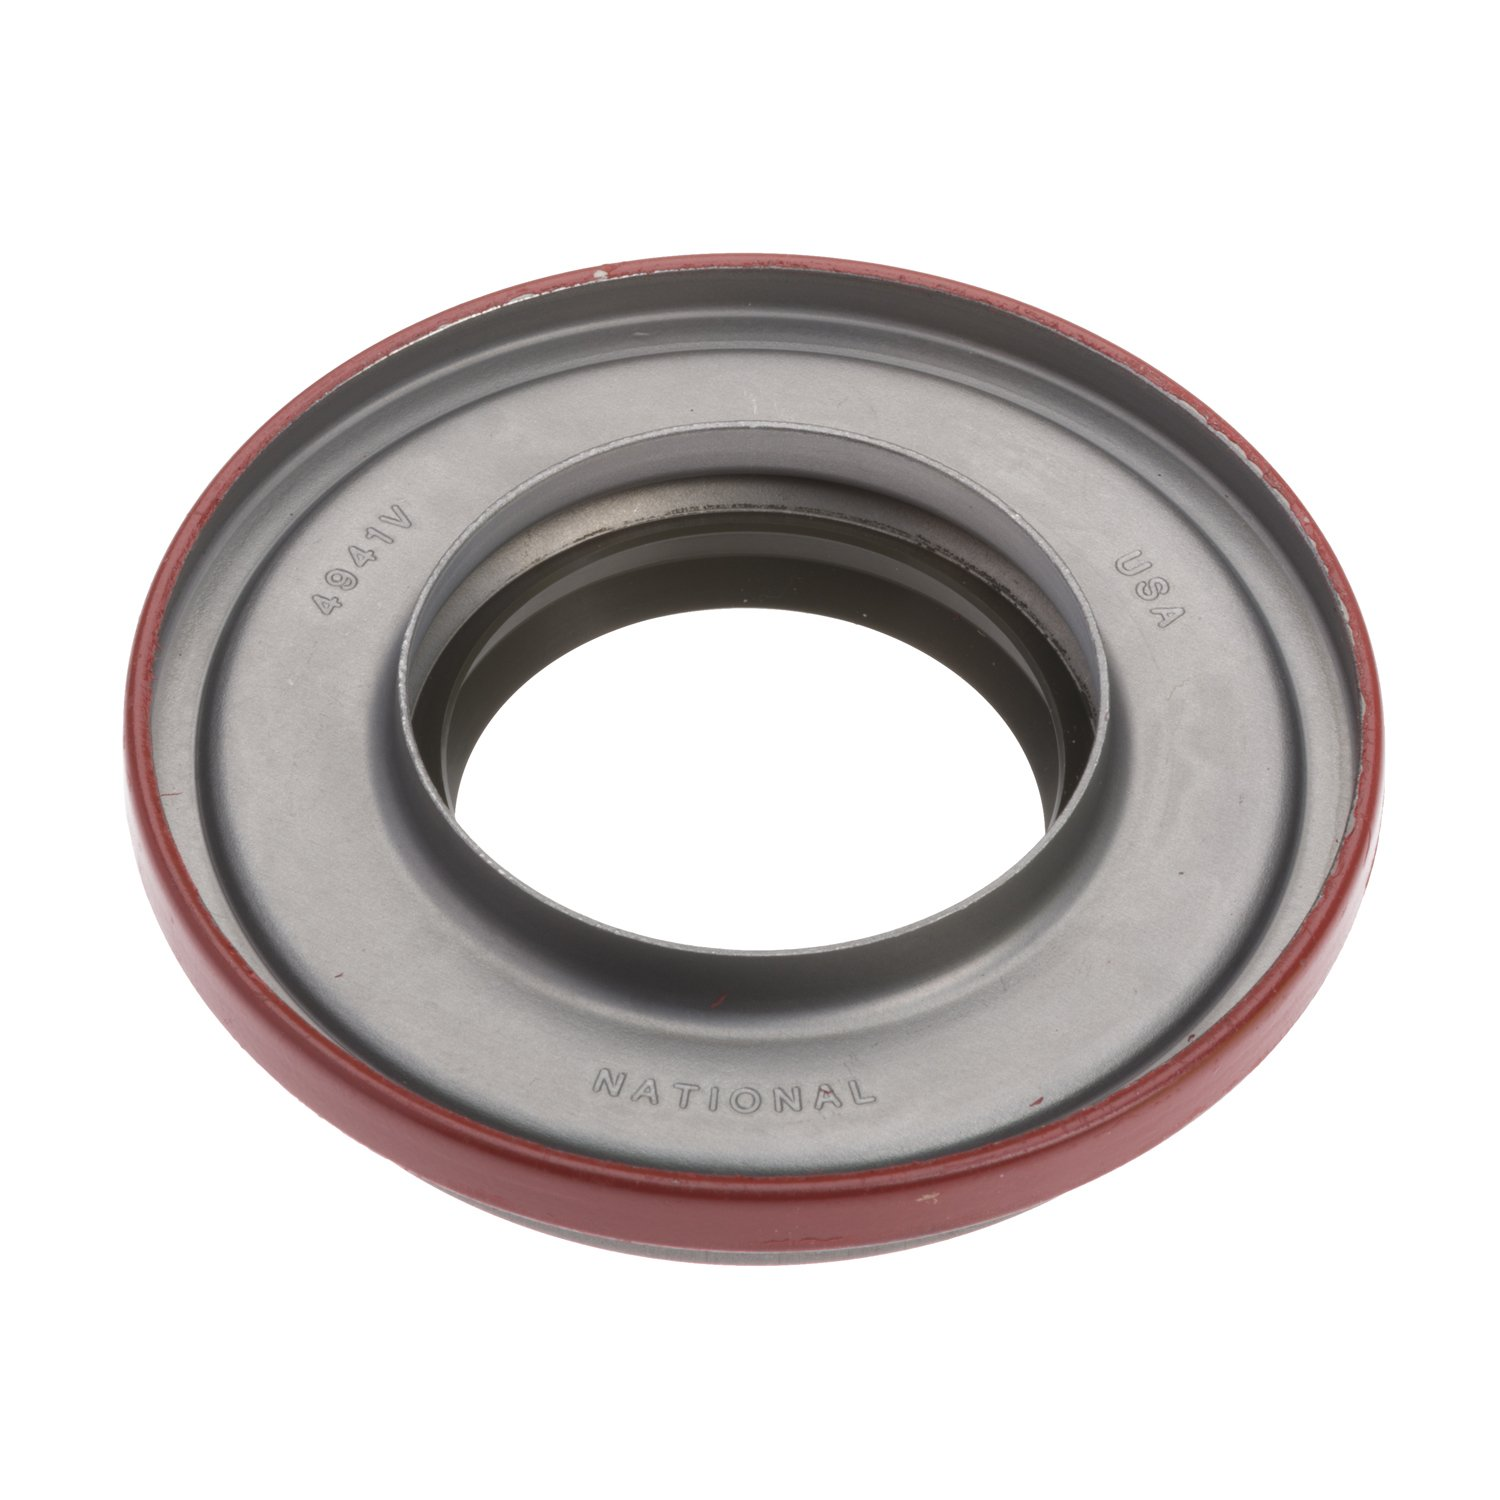 National 4941V Oil Seal 4941V-NAT